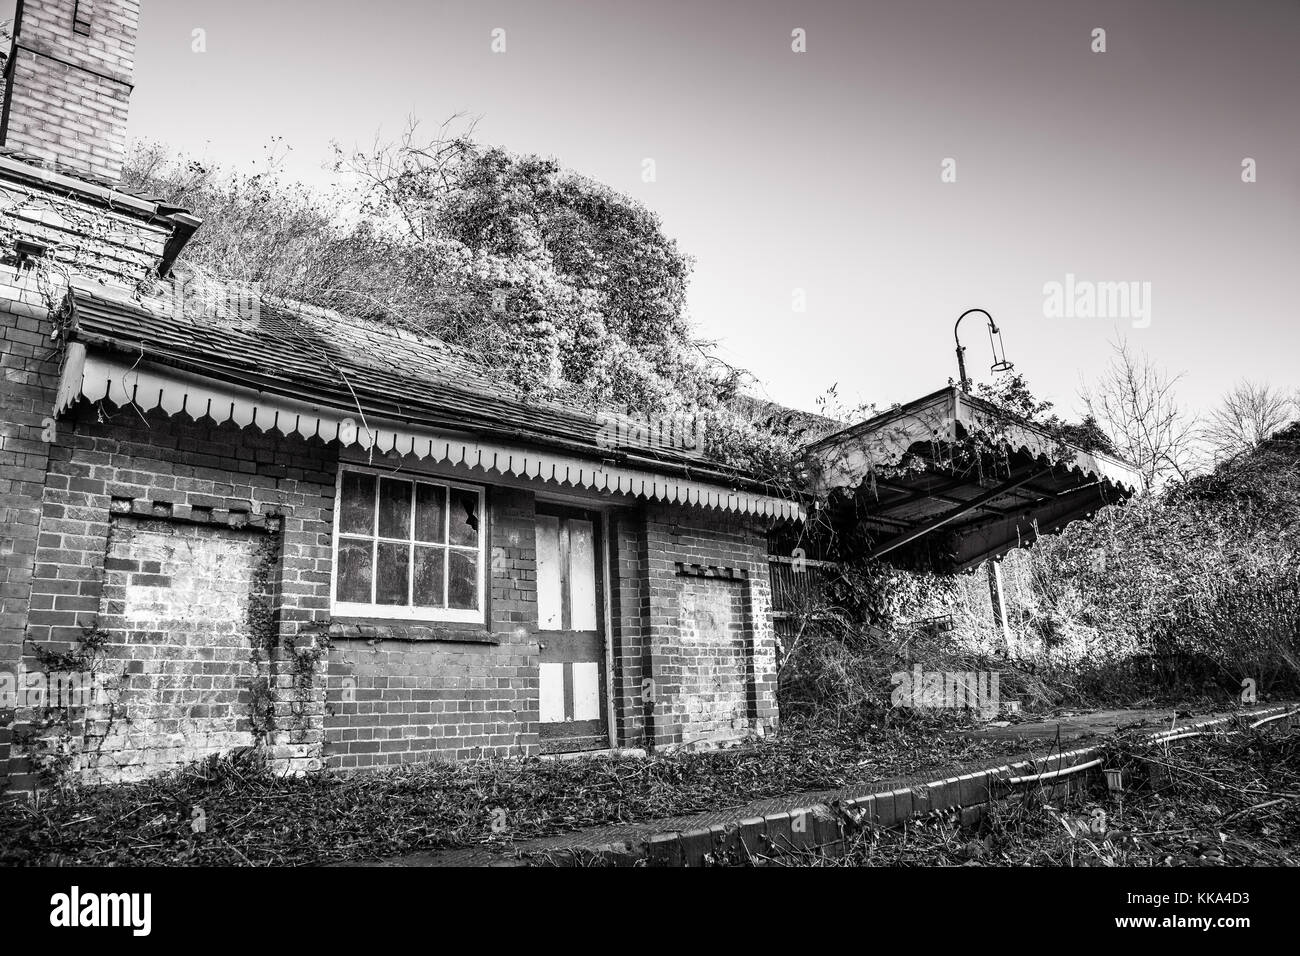 Black & white shot of disused Victorian station house in dilapidated state, in need of significant repair. Bricked - Stock Image